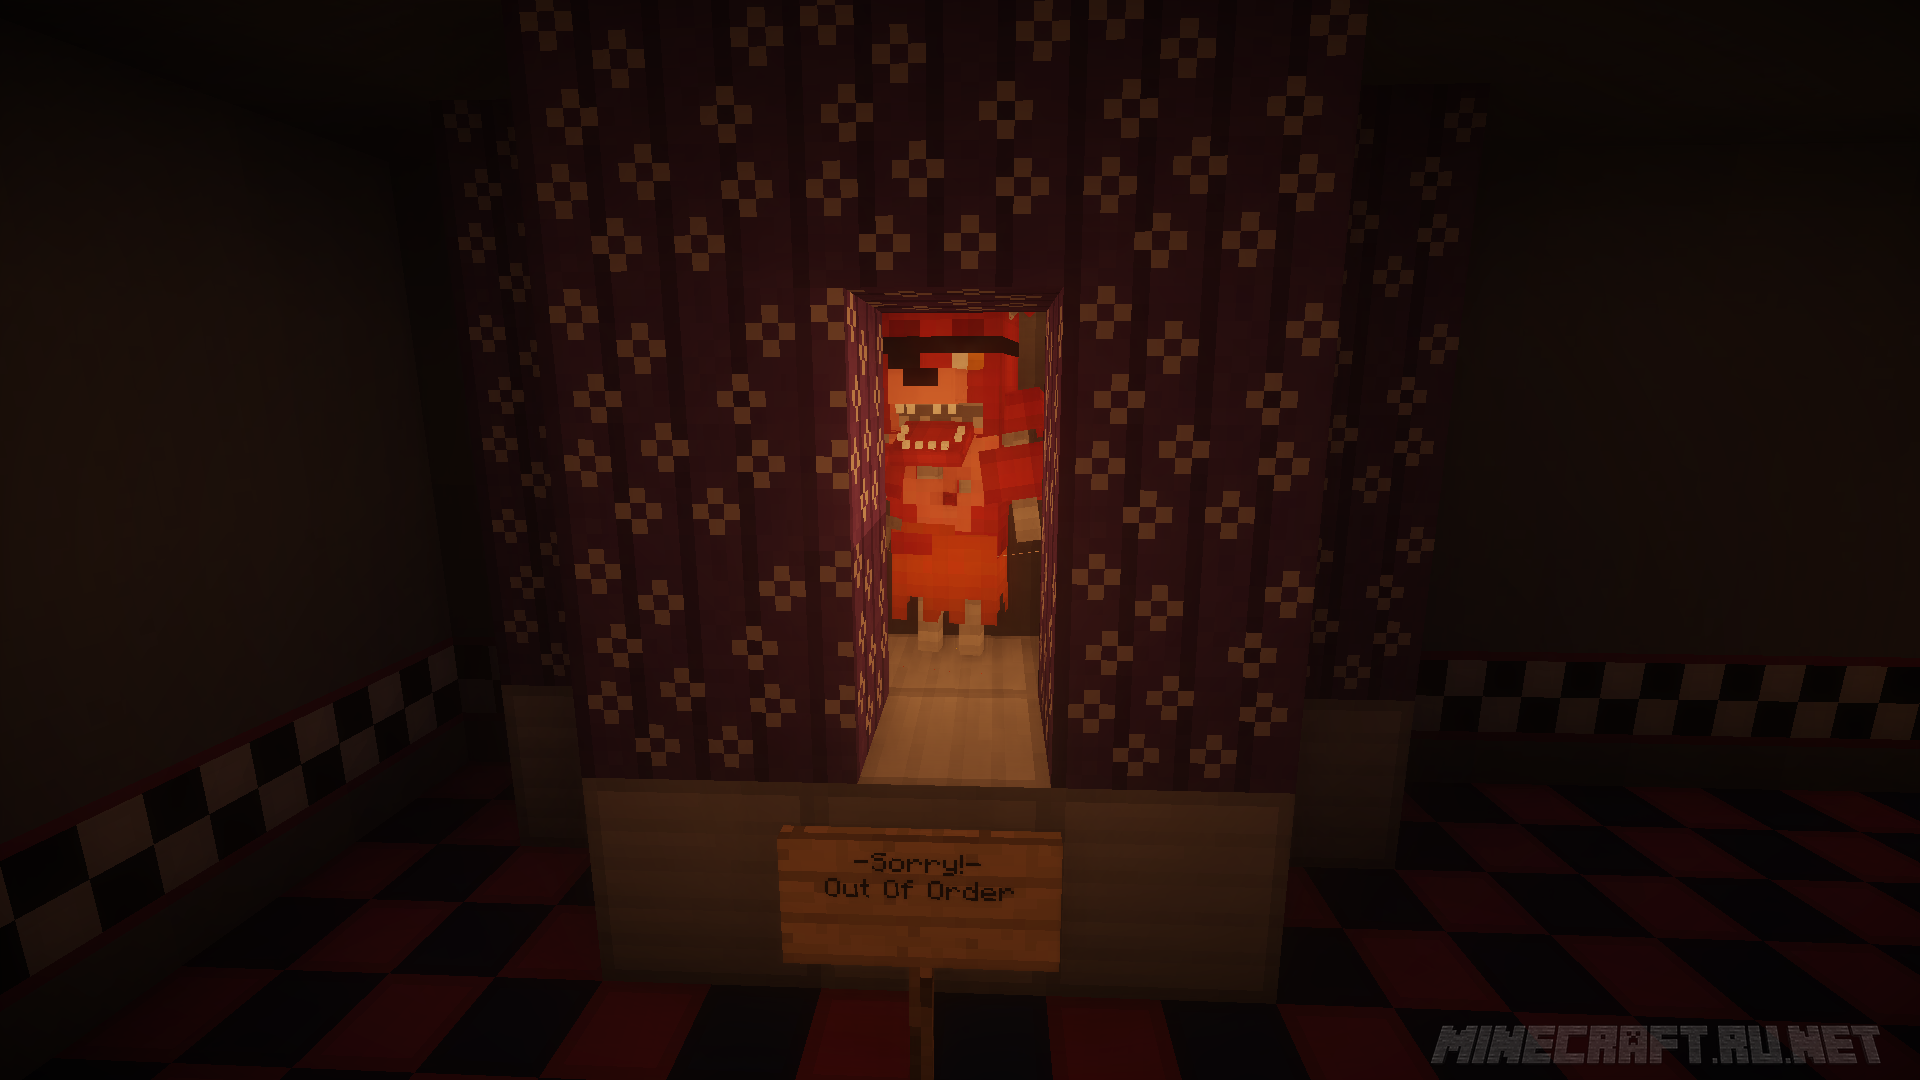 Five Nights at Freddy's 2 - The texture pack!